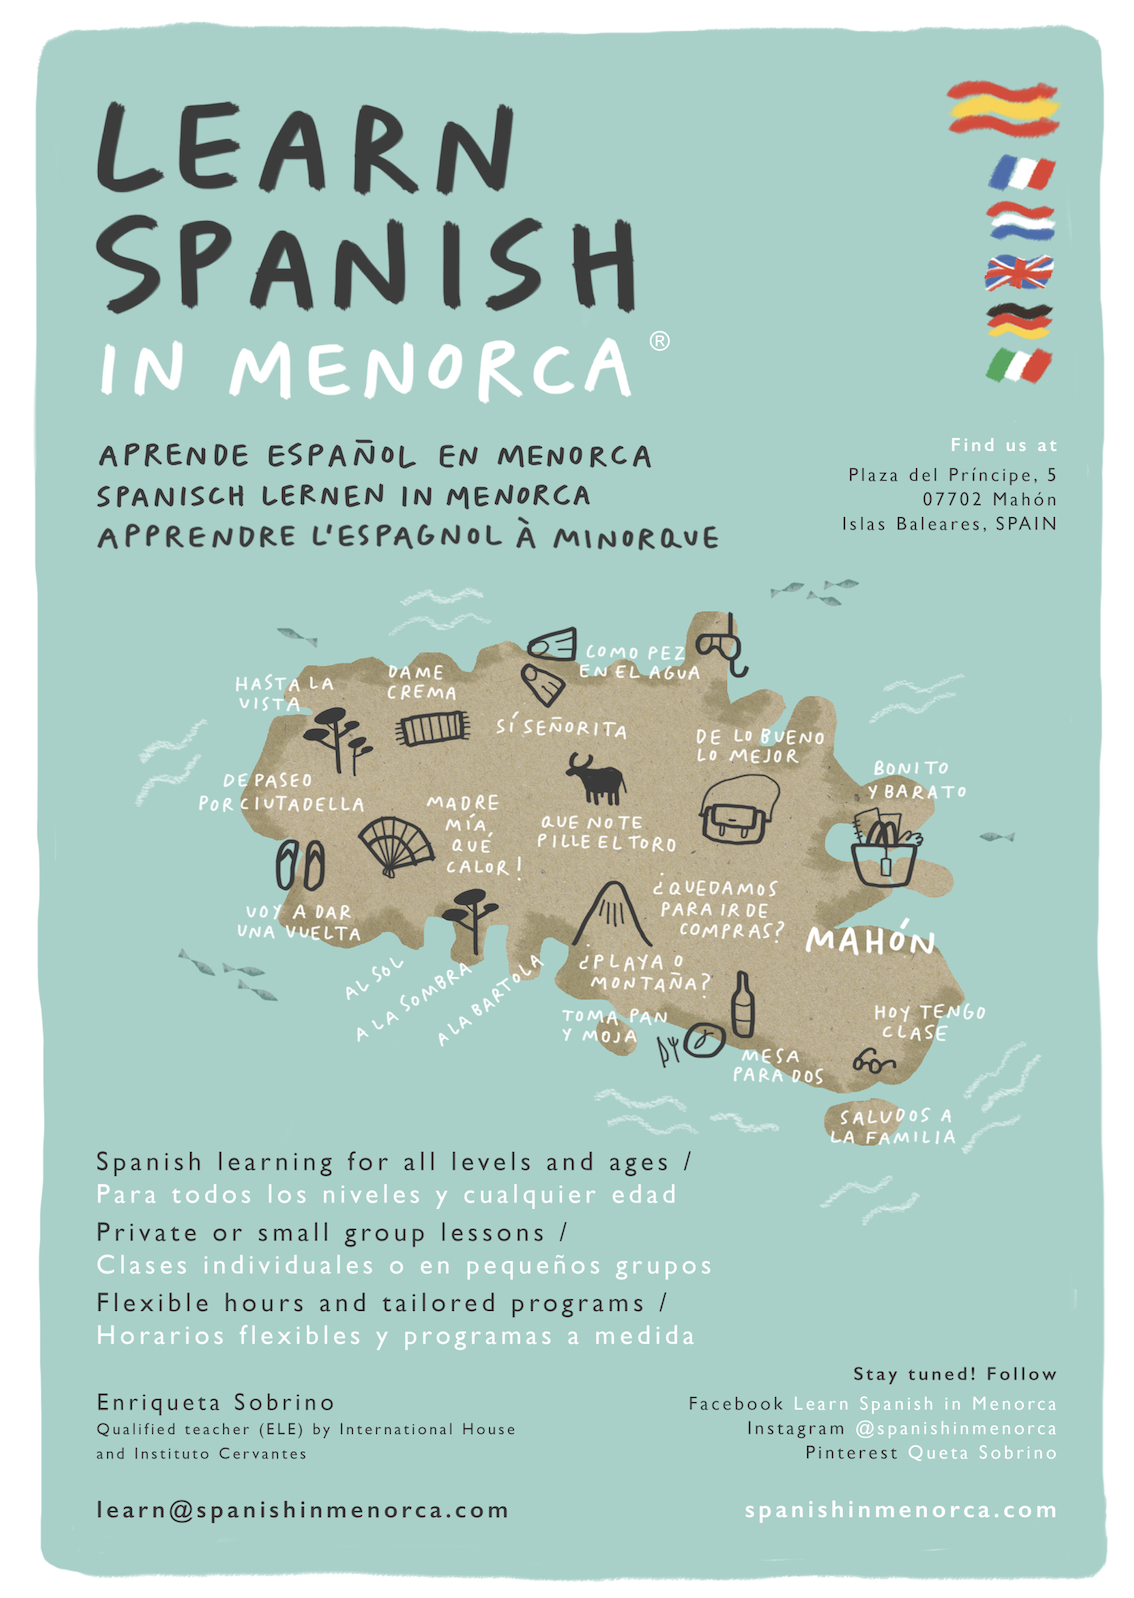 learn spanish in menorca school poster map icons expressions 2018